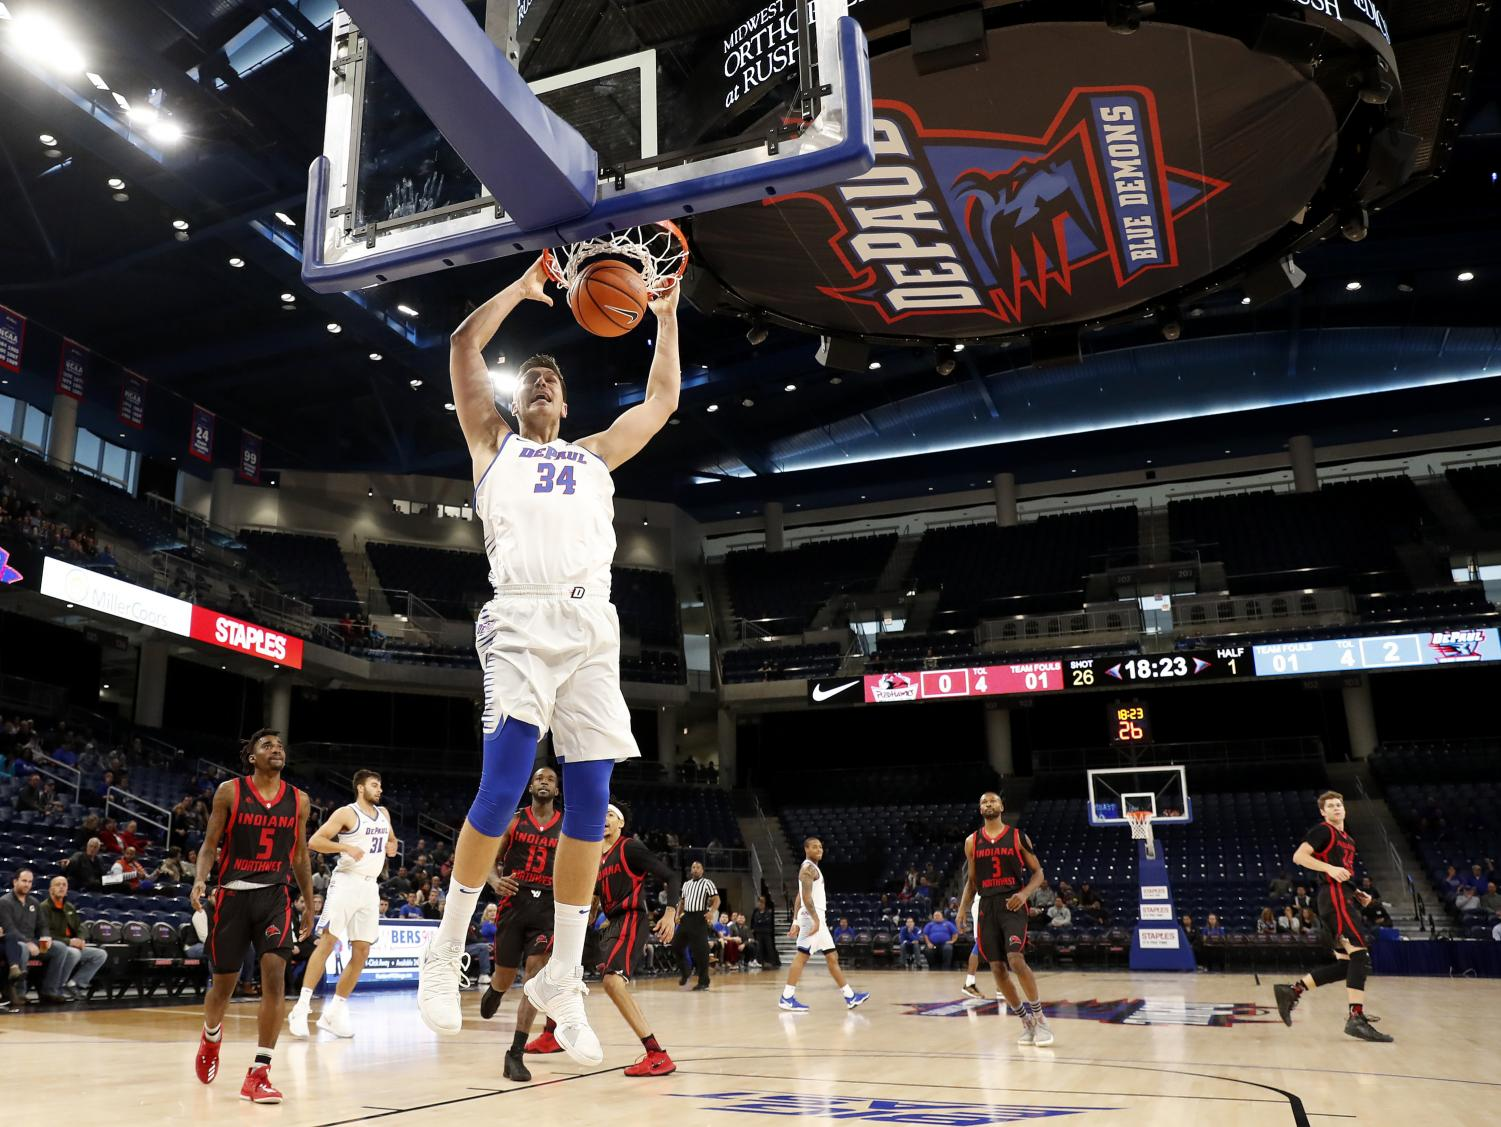 Marin Maric throws down a dunk in DePaul's preseason exhibition game.  (Photo courtesy of DePaul Athletics)